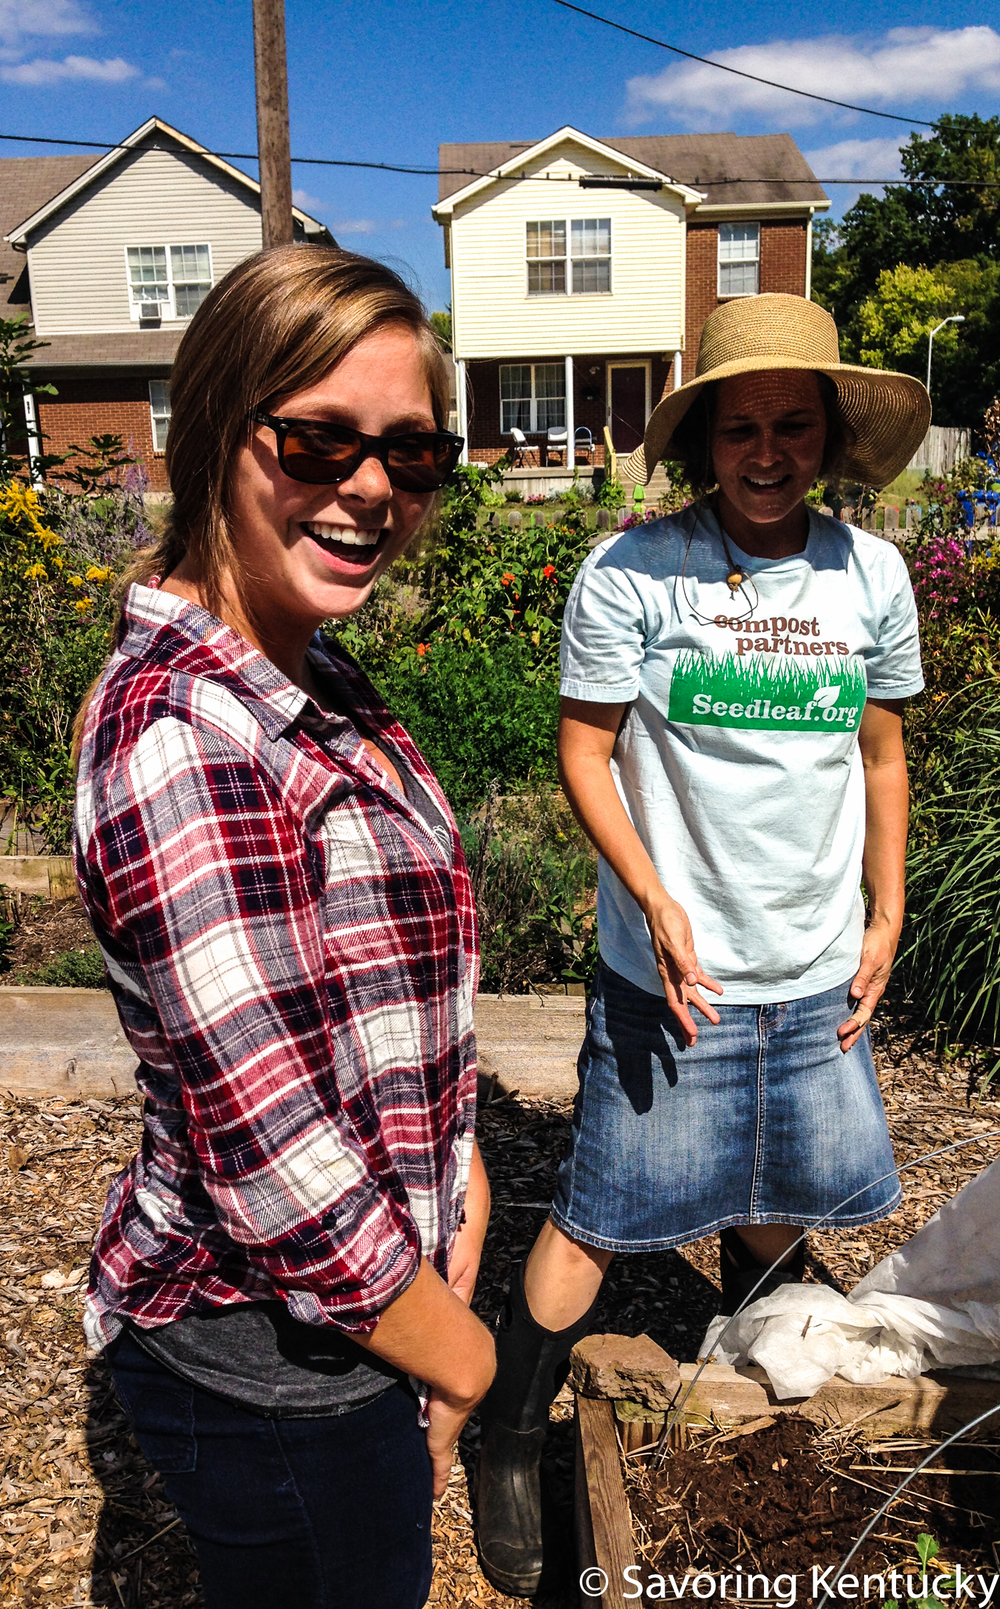 Morgan Miller, left, visits with Sherry Maddock at  The 4th Street Farm  in downtown Lexington.